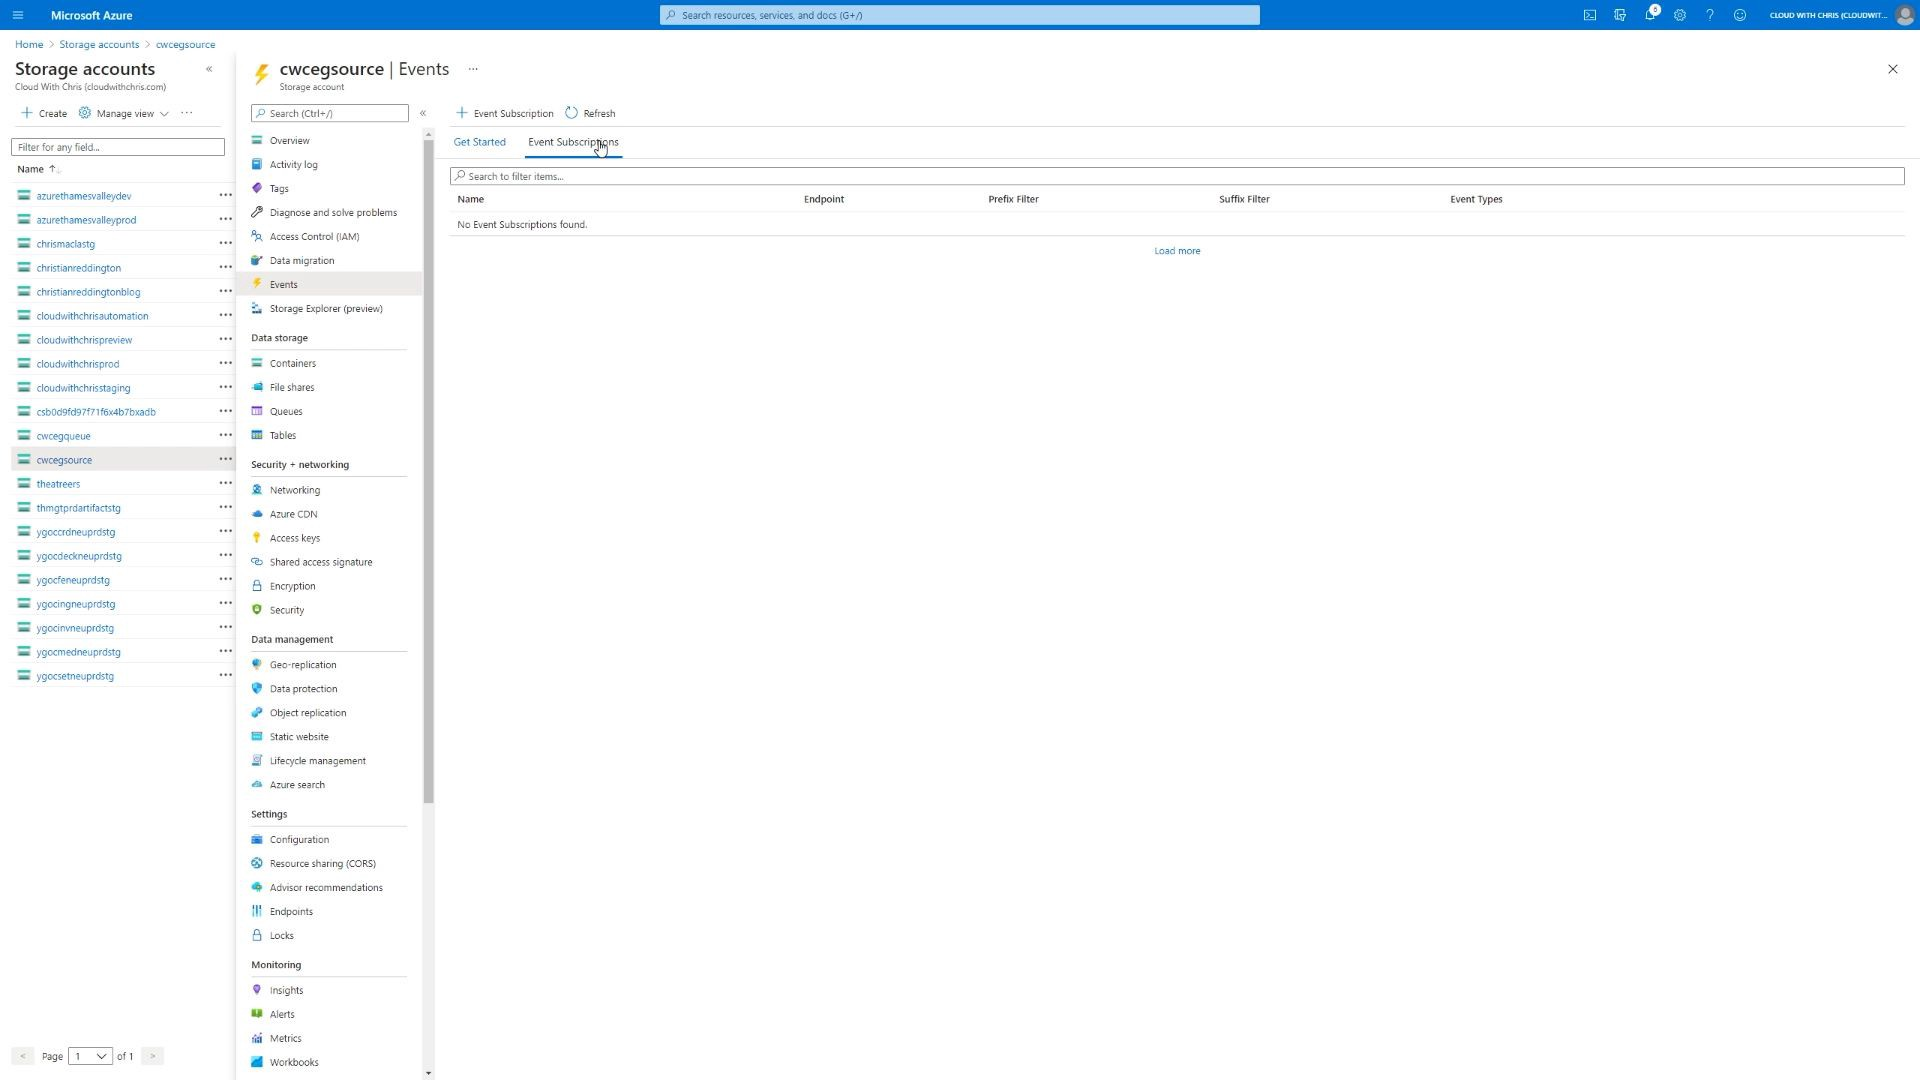 Screenshot showing the events section of the source storage account